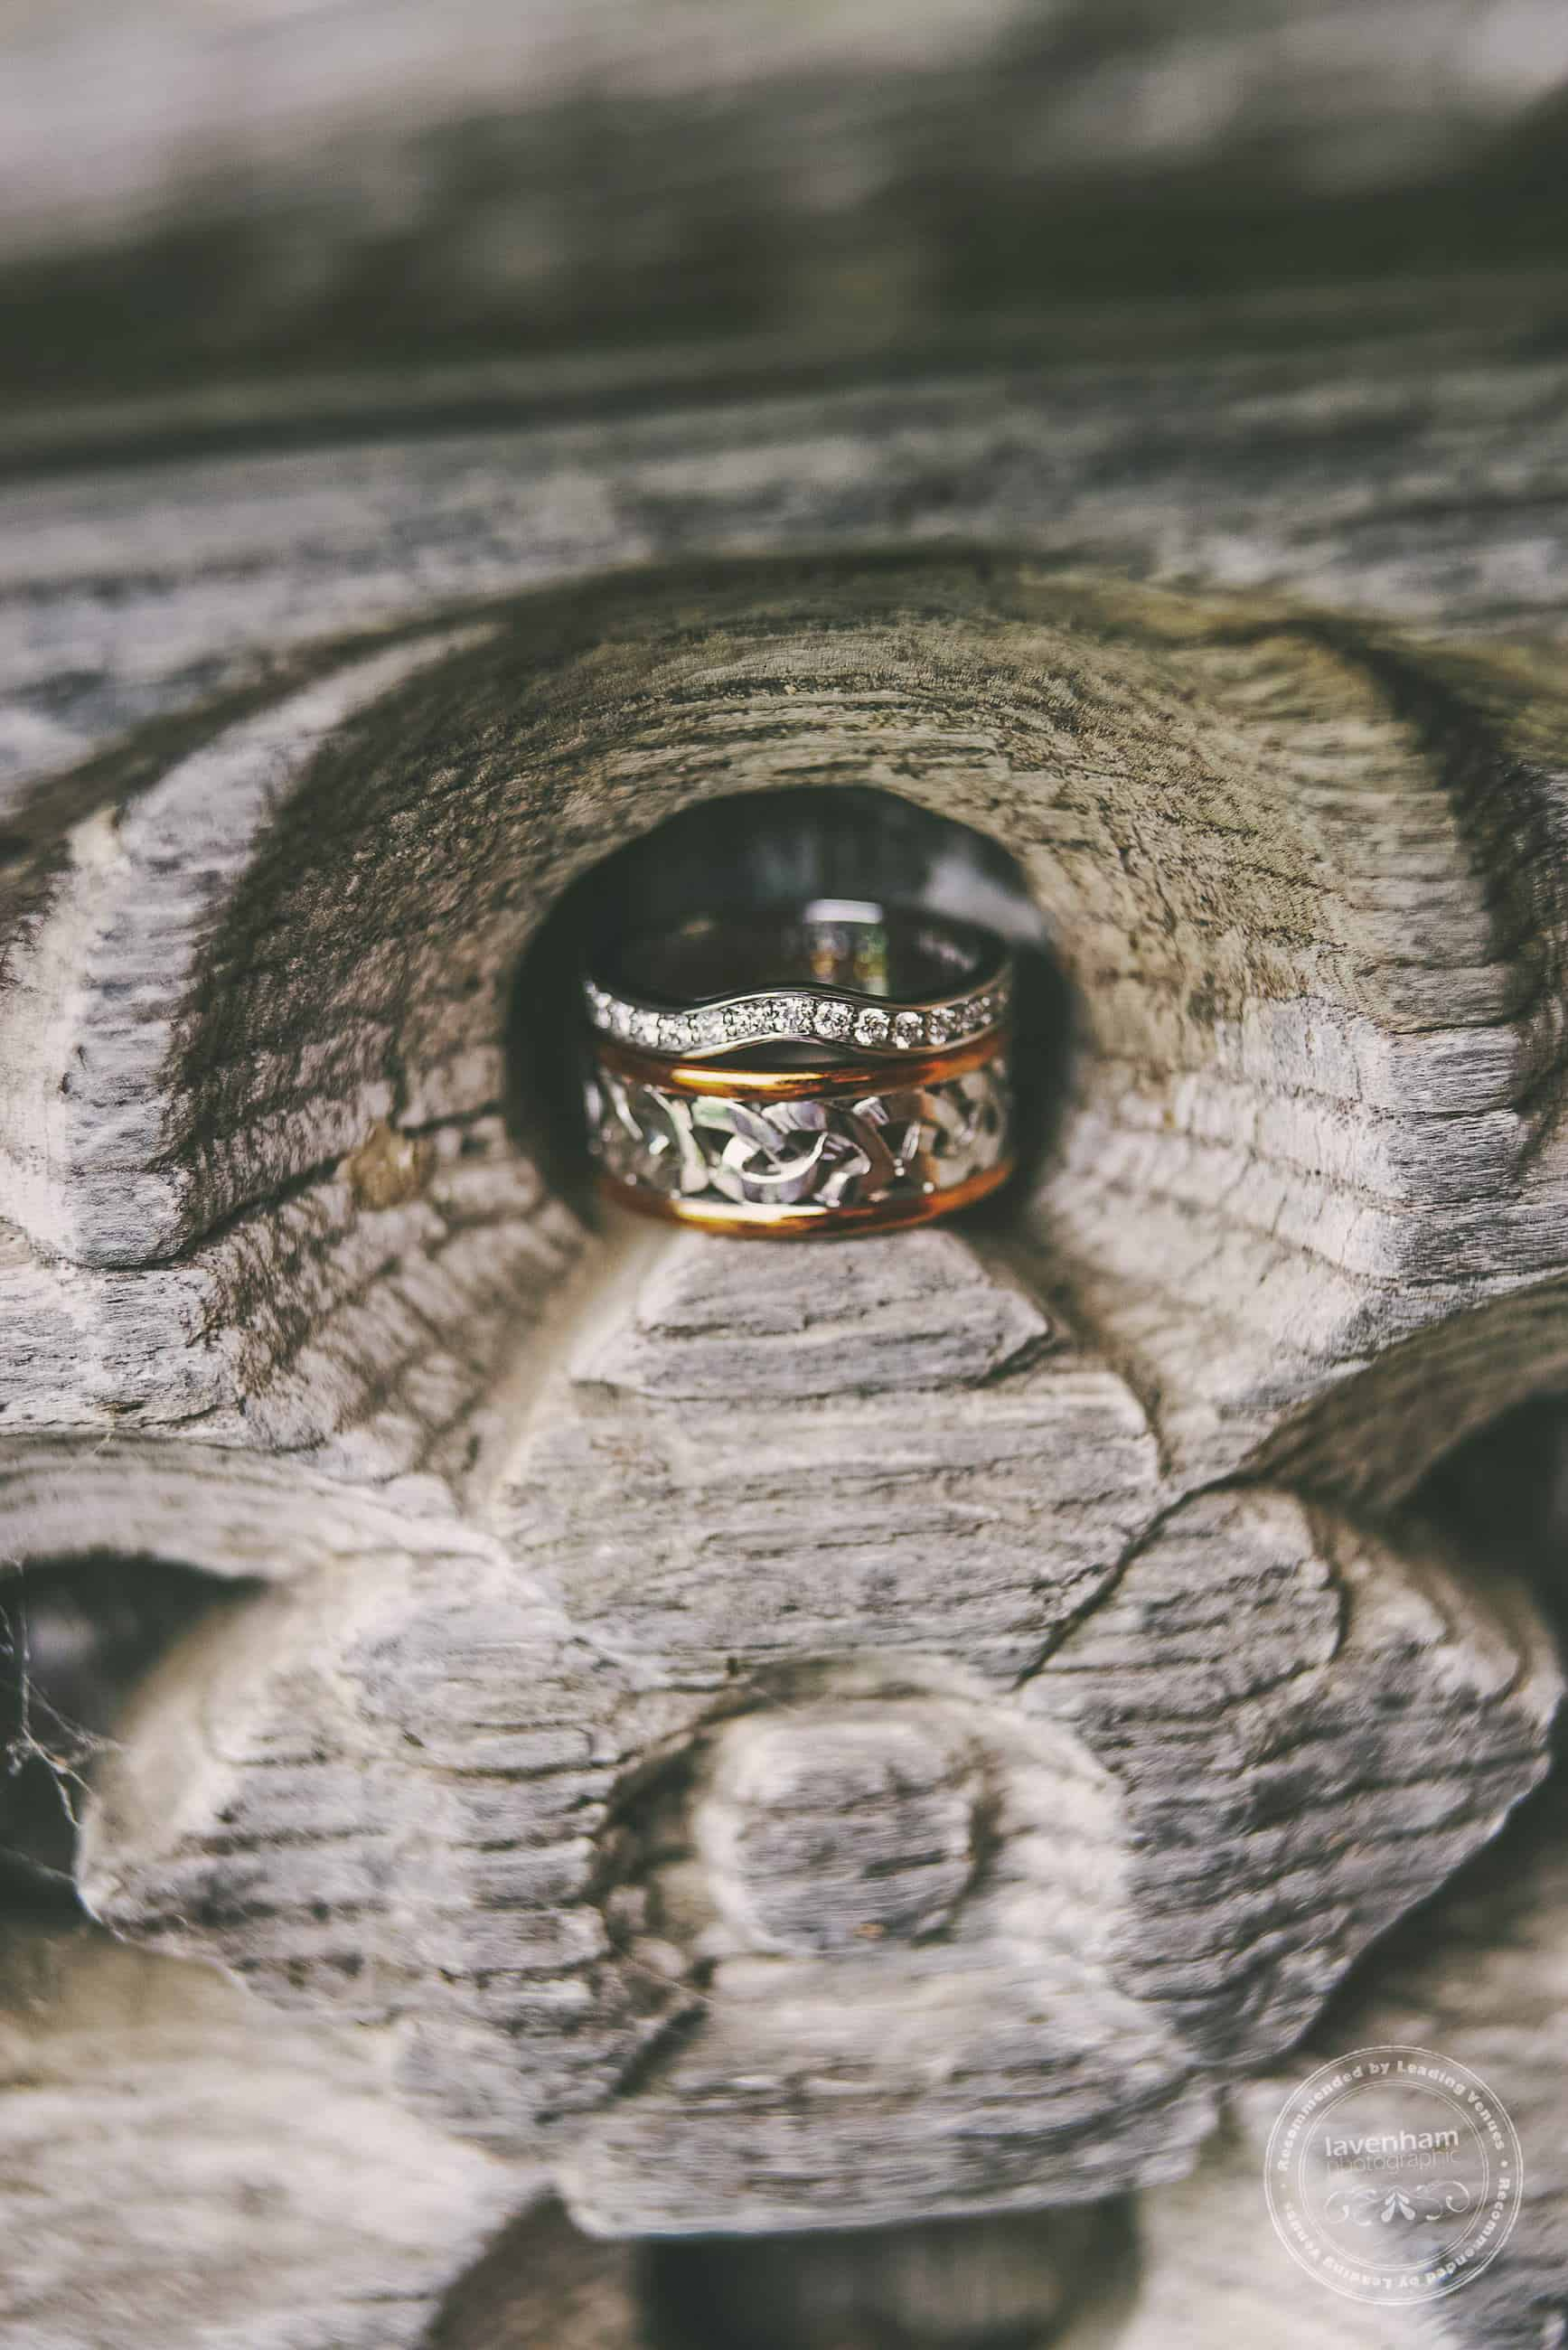 The wonderful carved details in one of the old doors at Leez Priory are just perfect for sitting wedding rings in for a detail photograph. Especially good when the wedding rings have this much detail!